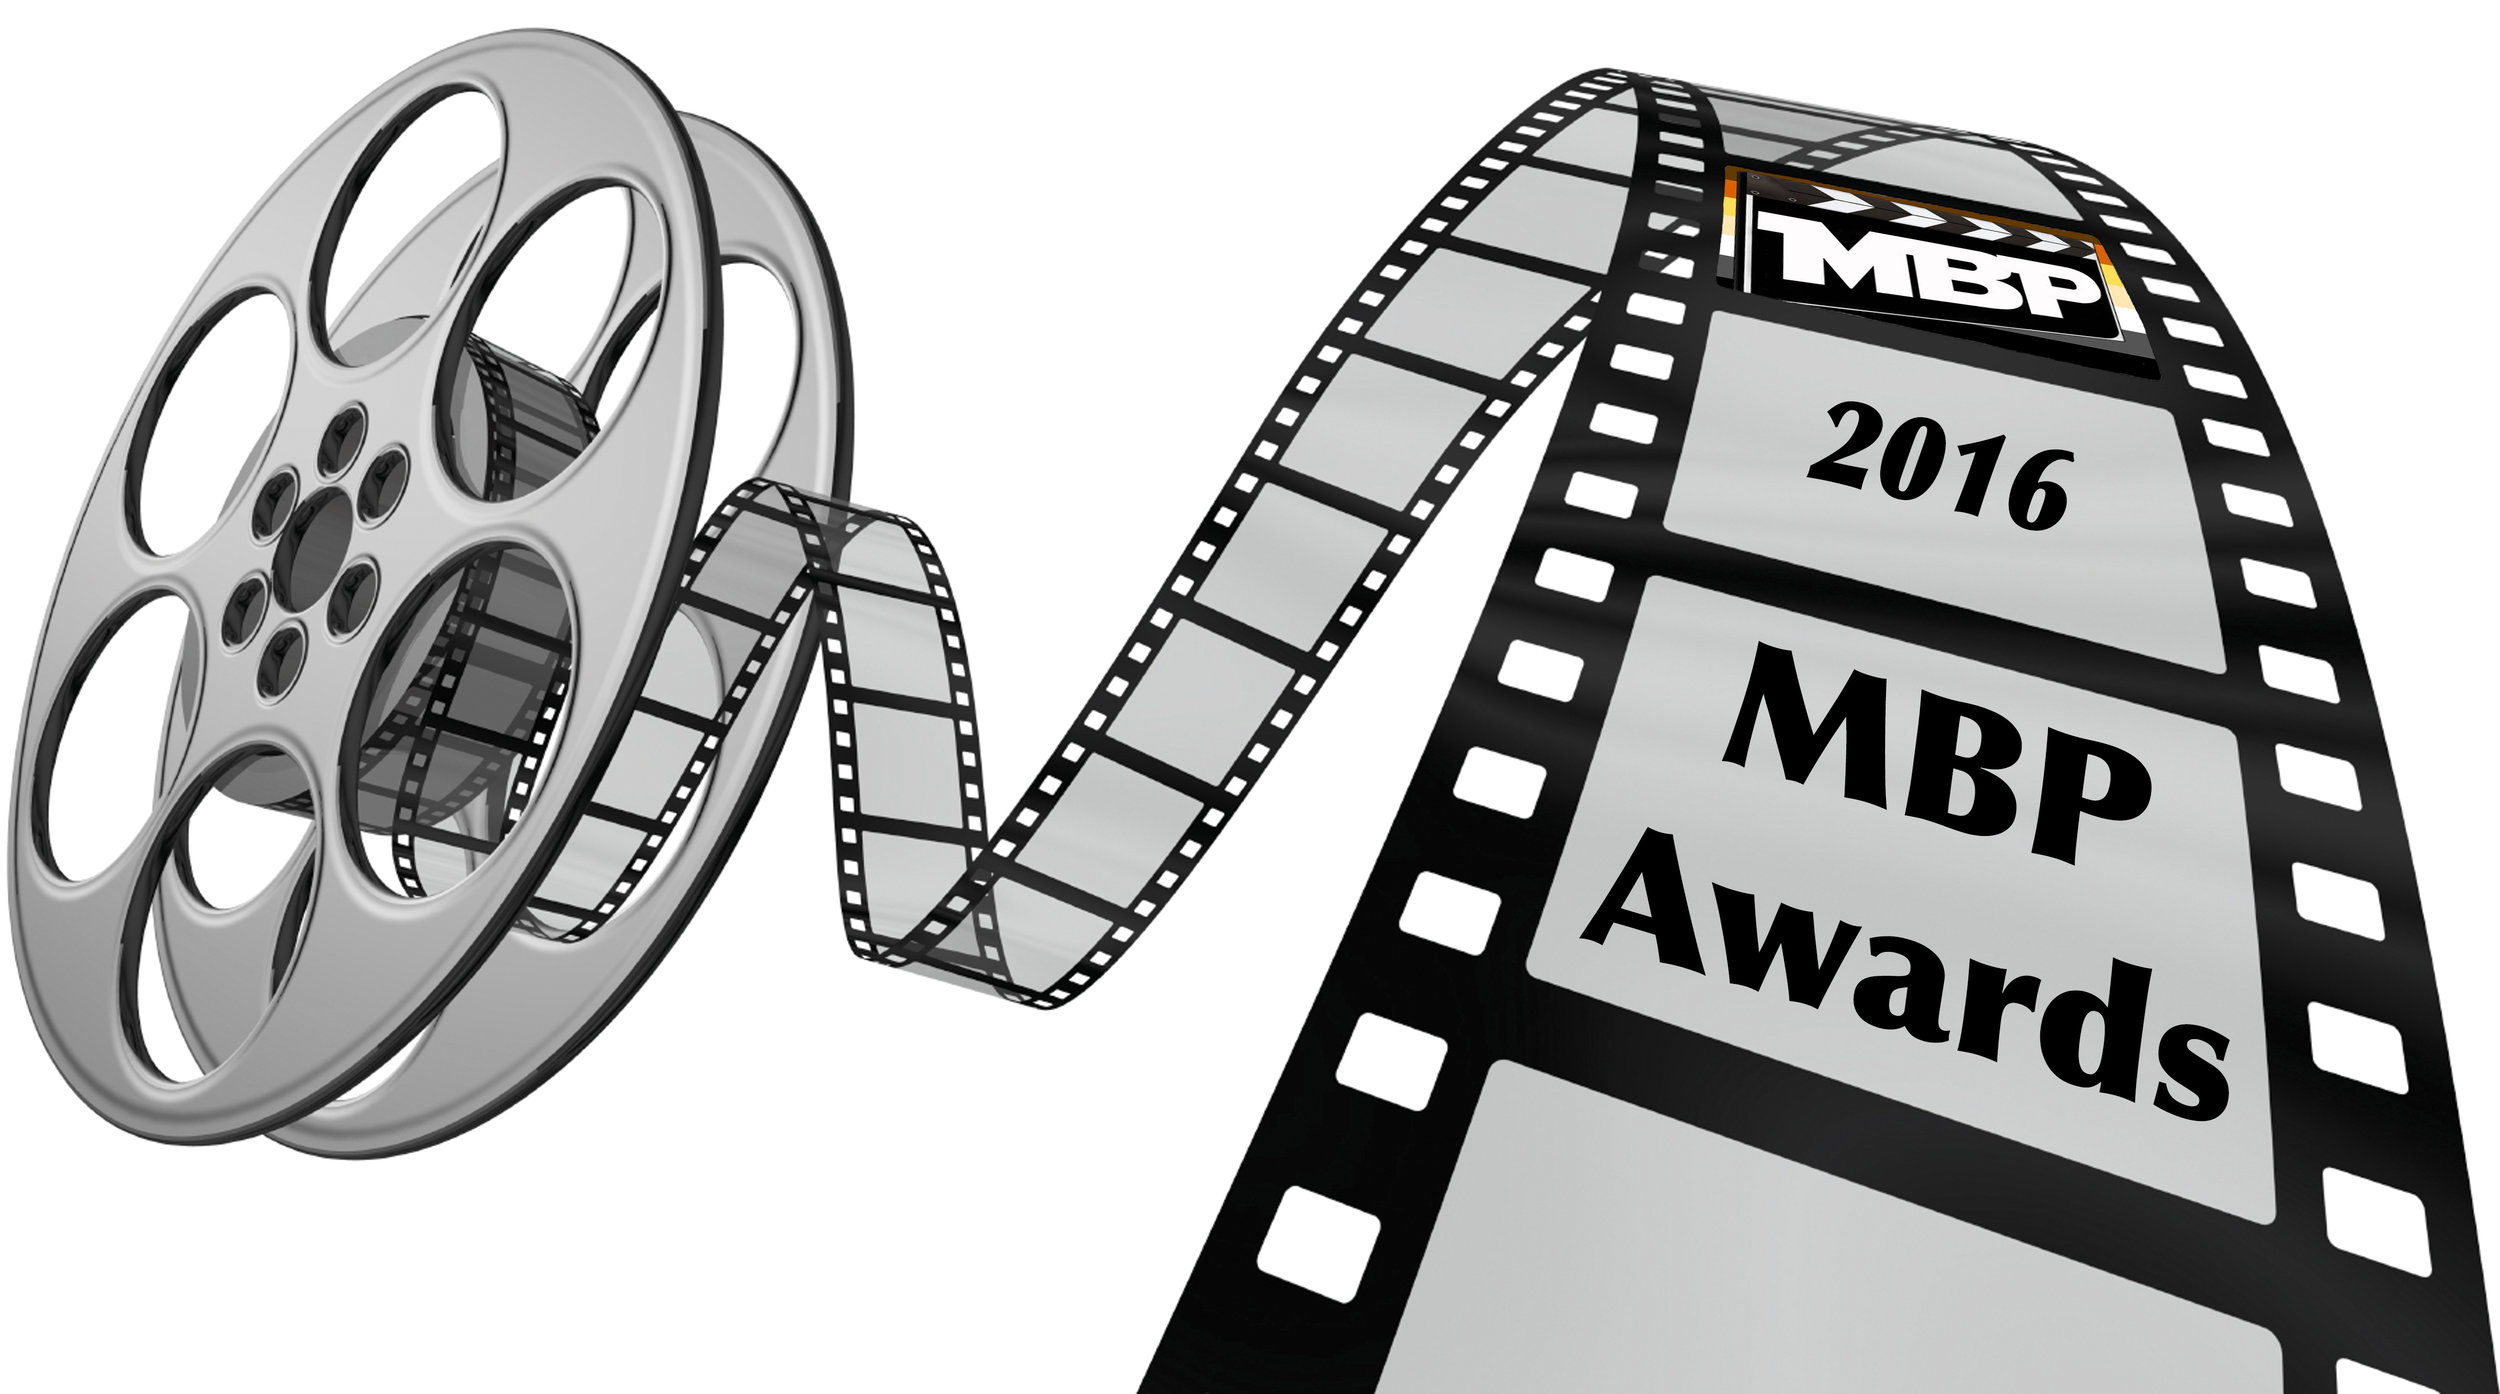 MBP e218 - The 2016 MBP Awards (2/3/   17)   It's time for the most prestigious awards show of the year! No, we aren't talking about the Oscars, and move aside Golden Globes. It's the 2016 MBP Awards! Will your favorite film win one of our ten awards? Click through to find out!